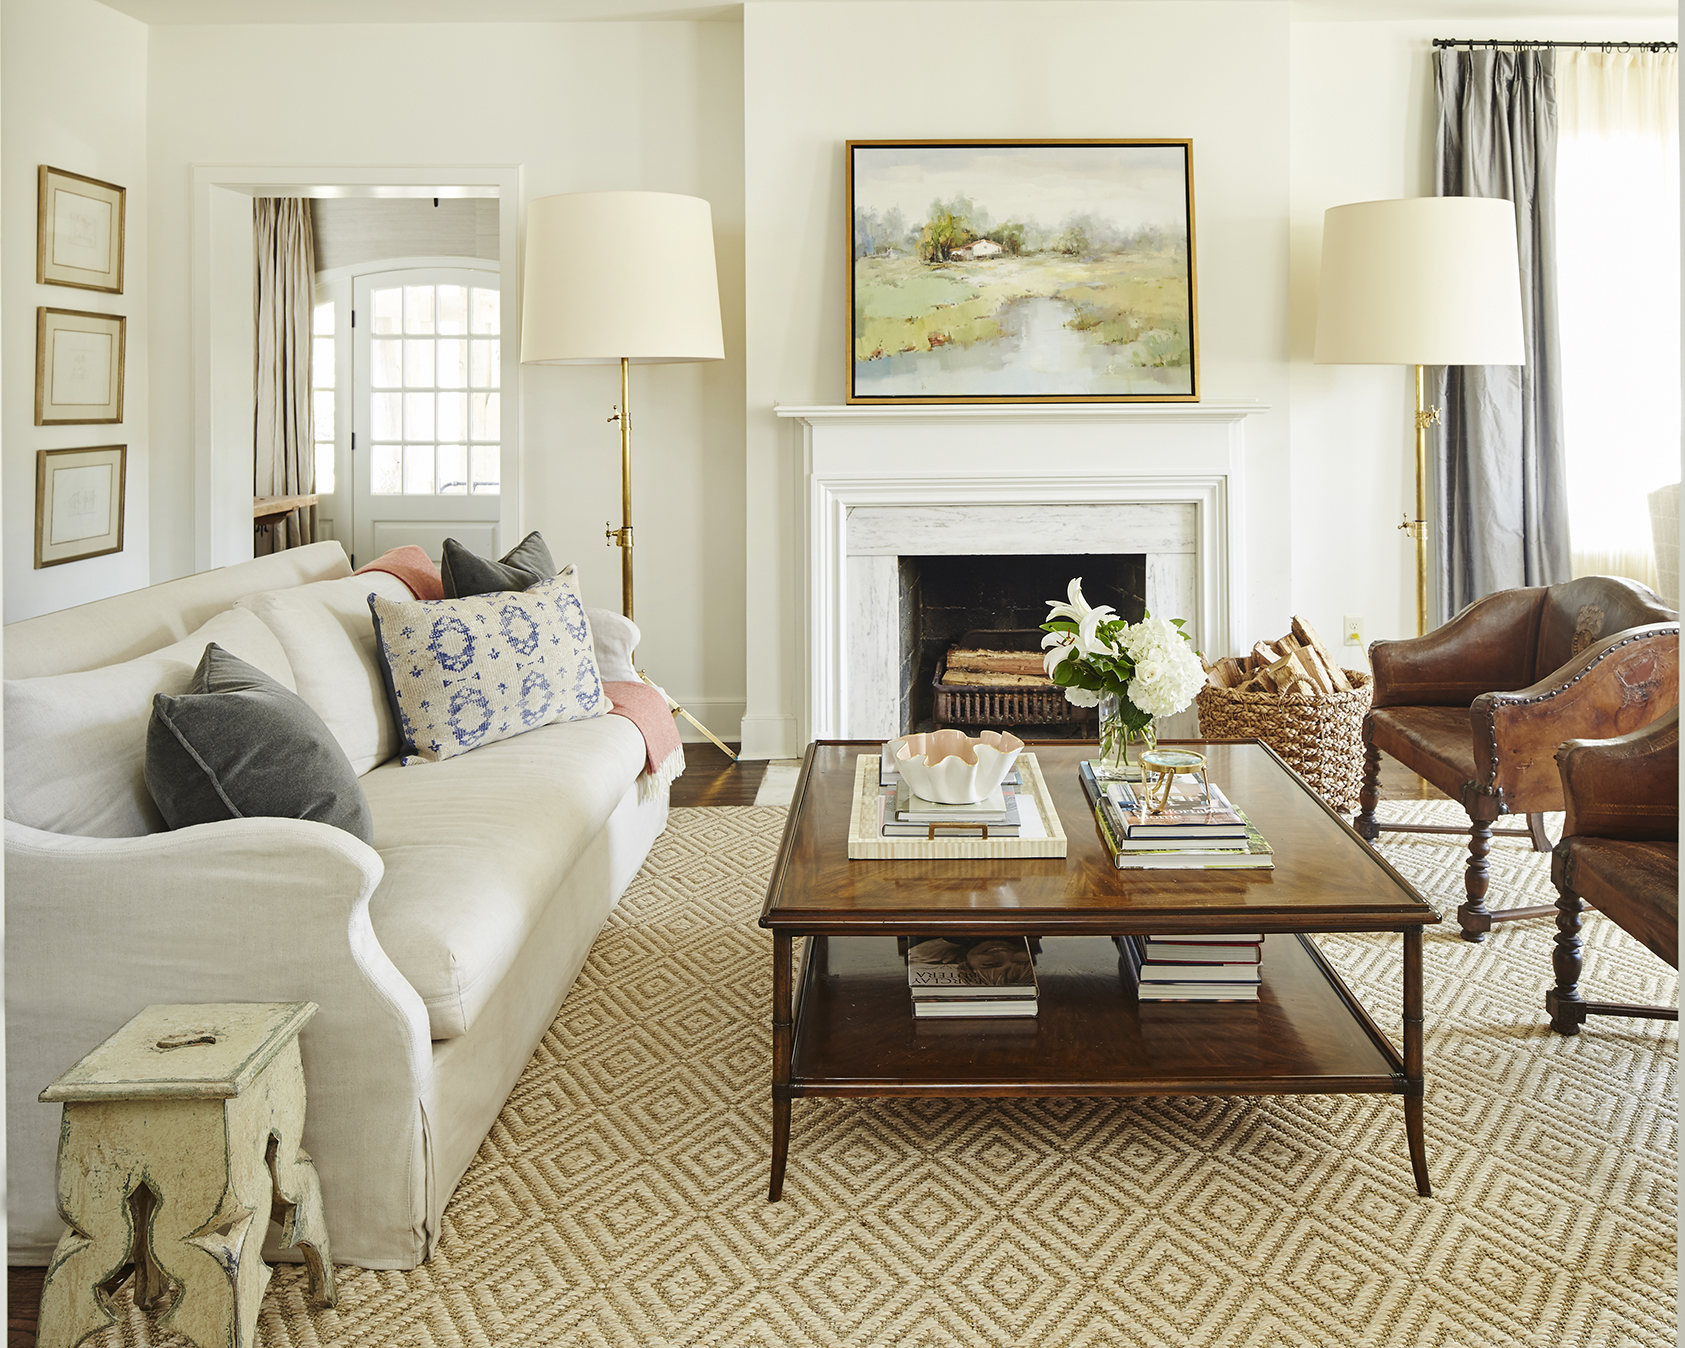 u201cA fireplace says home to meu201d says Gilbreath of the centerpiece of her living room which is a favorite spot for the family to gather. & Southern charm: All eyes are on interior designer Ashley Gilbreathu0027s ...